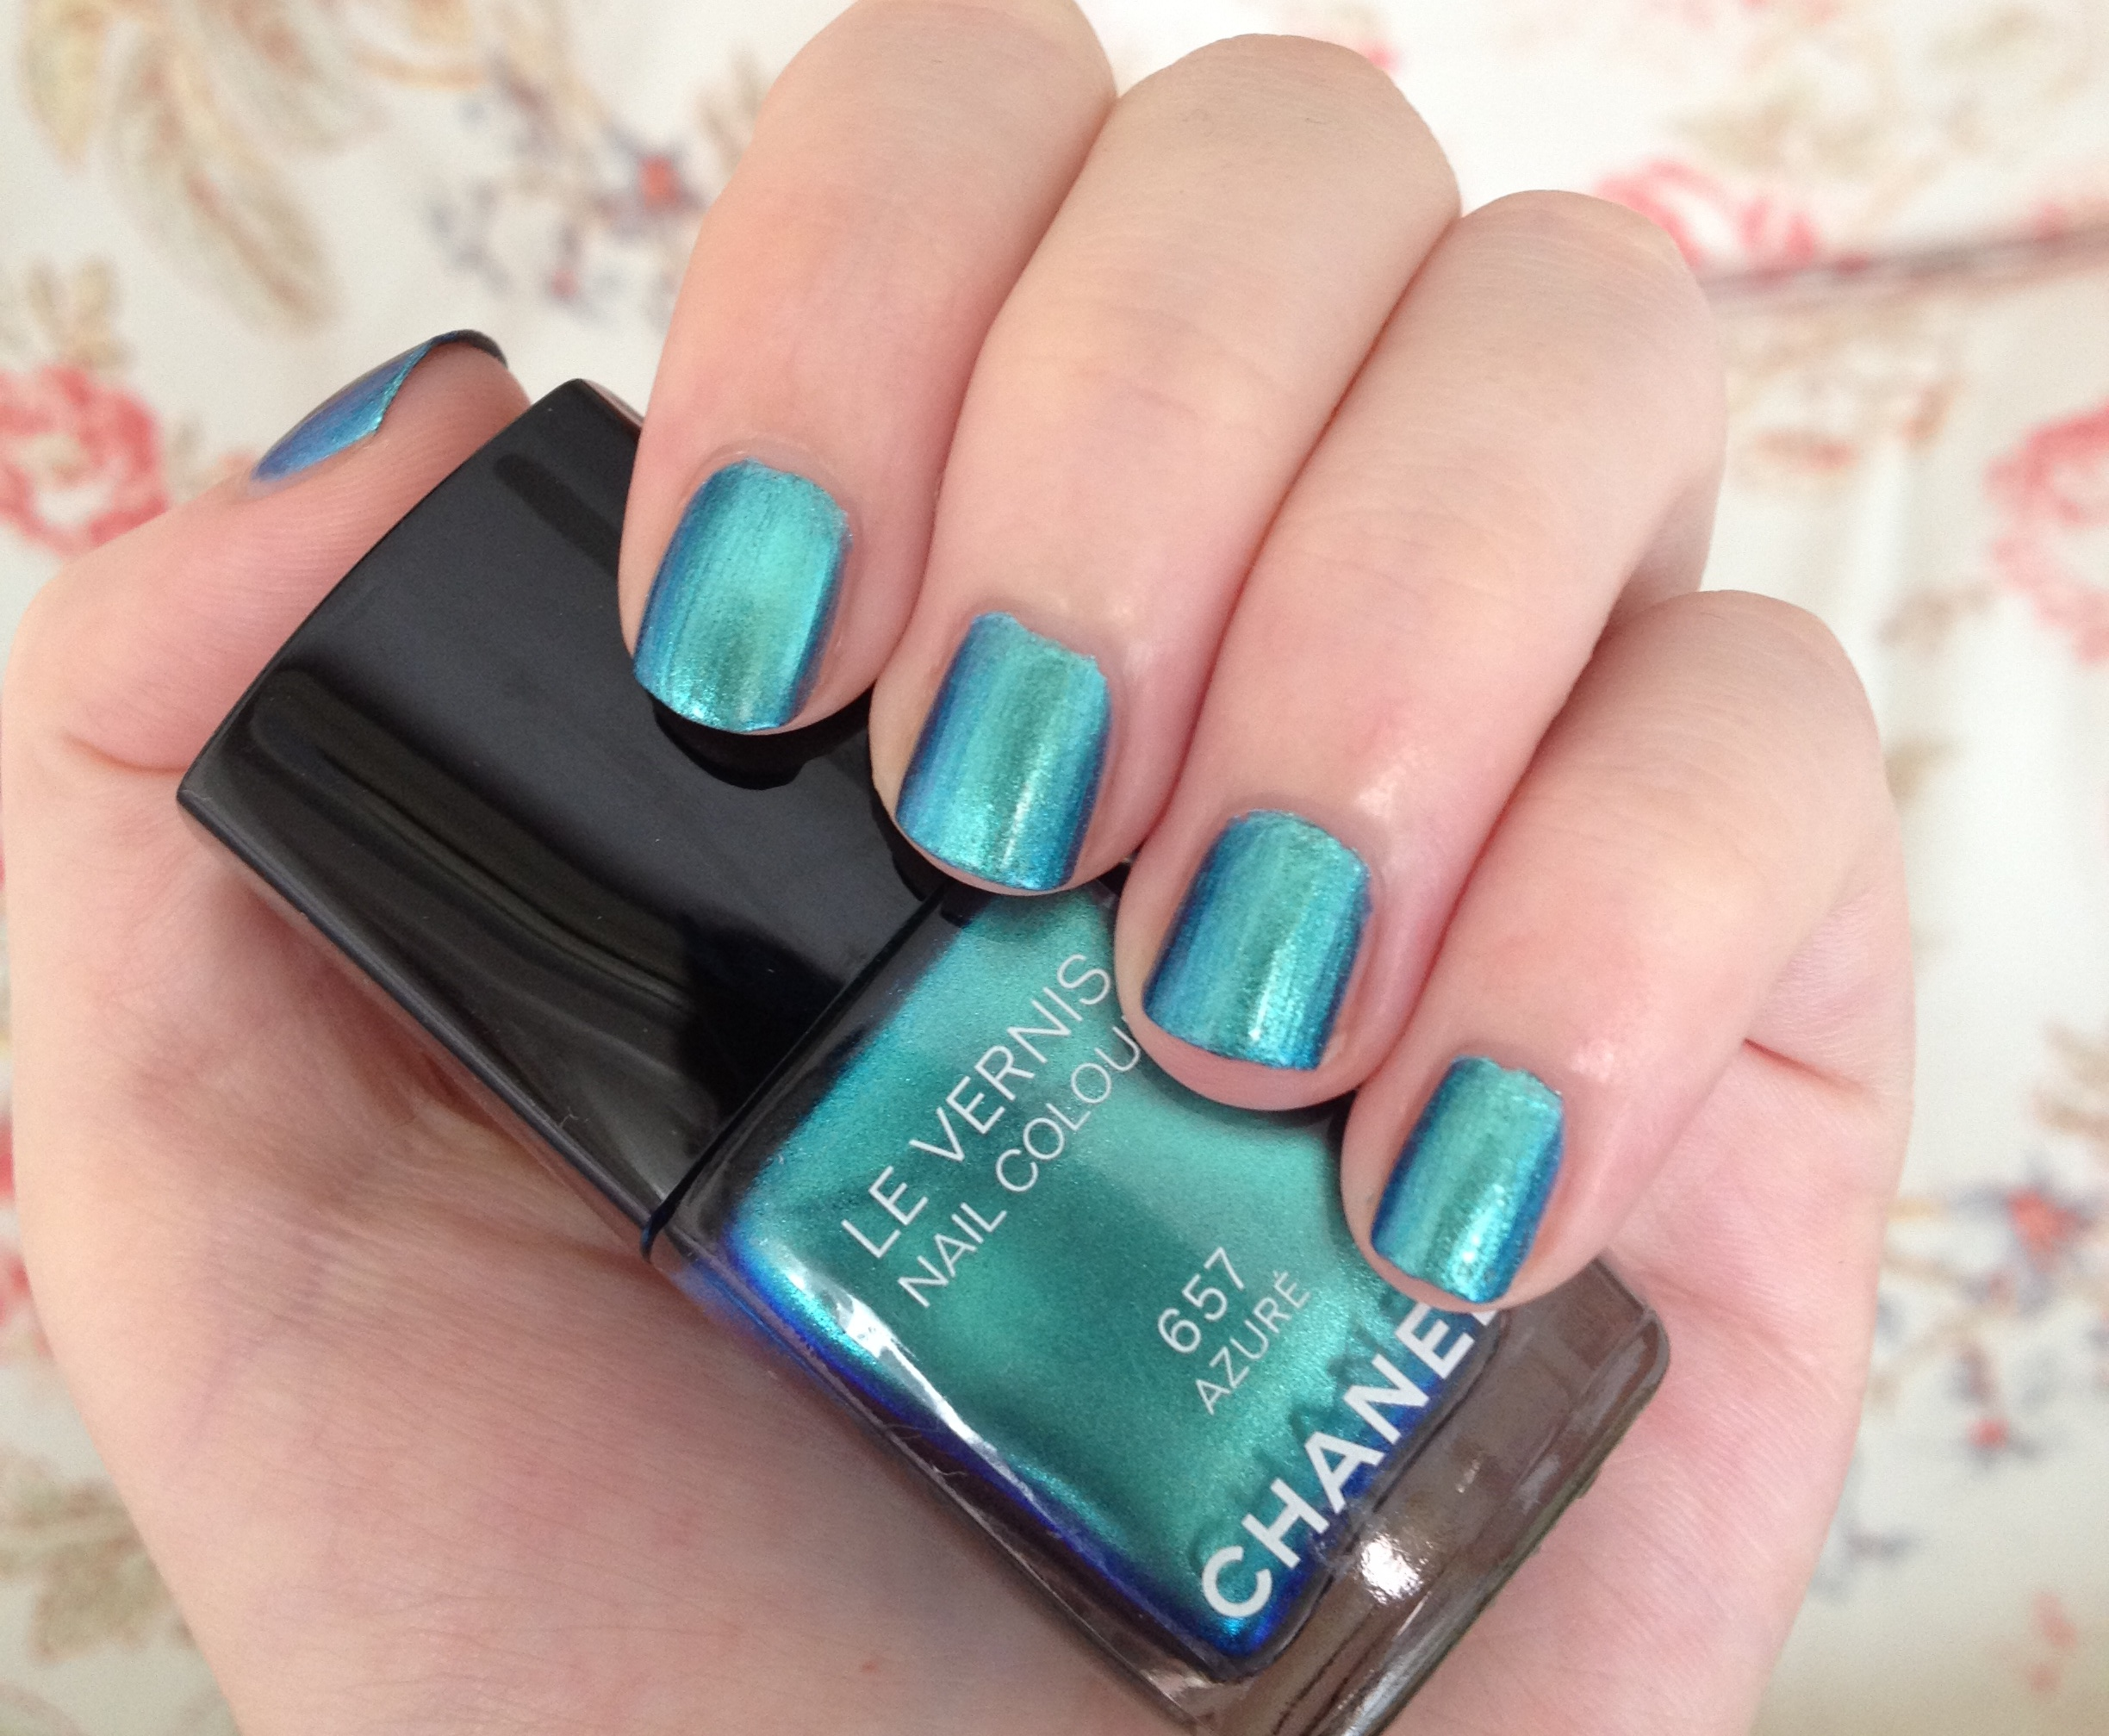 Chanel Azure nail polish review | Through The Looking Glass